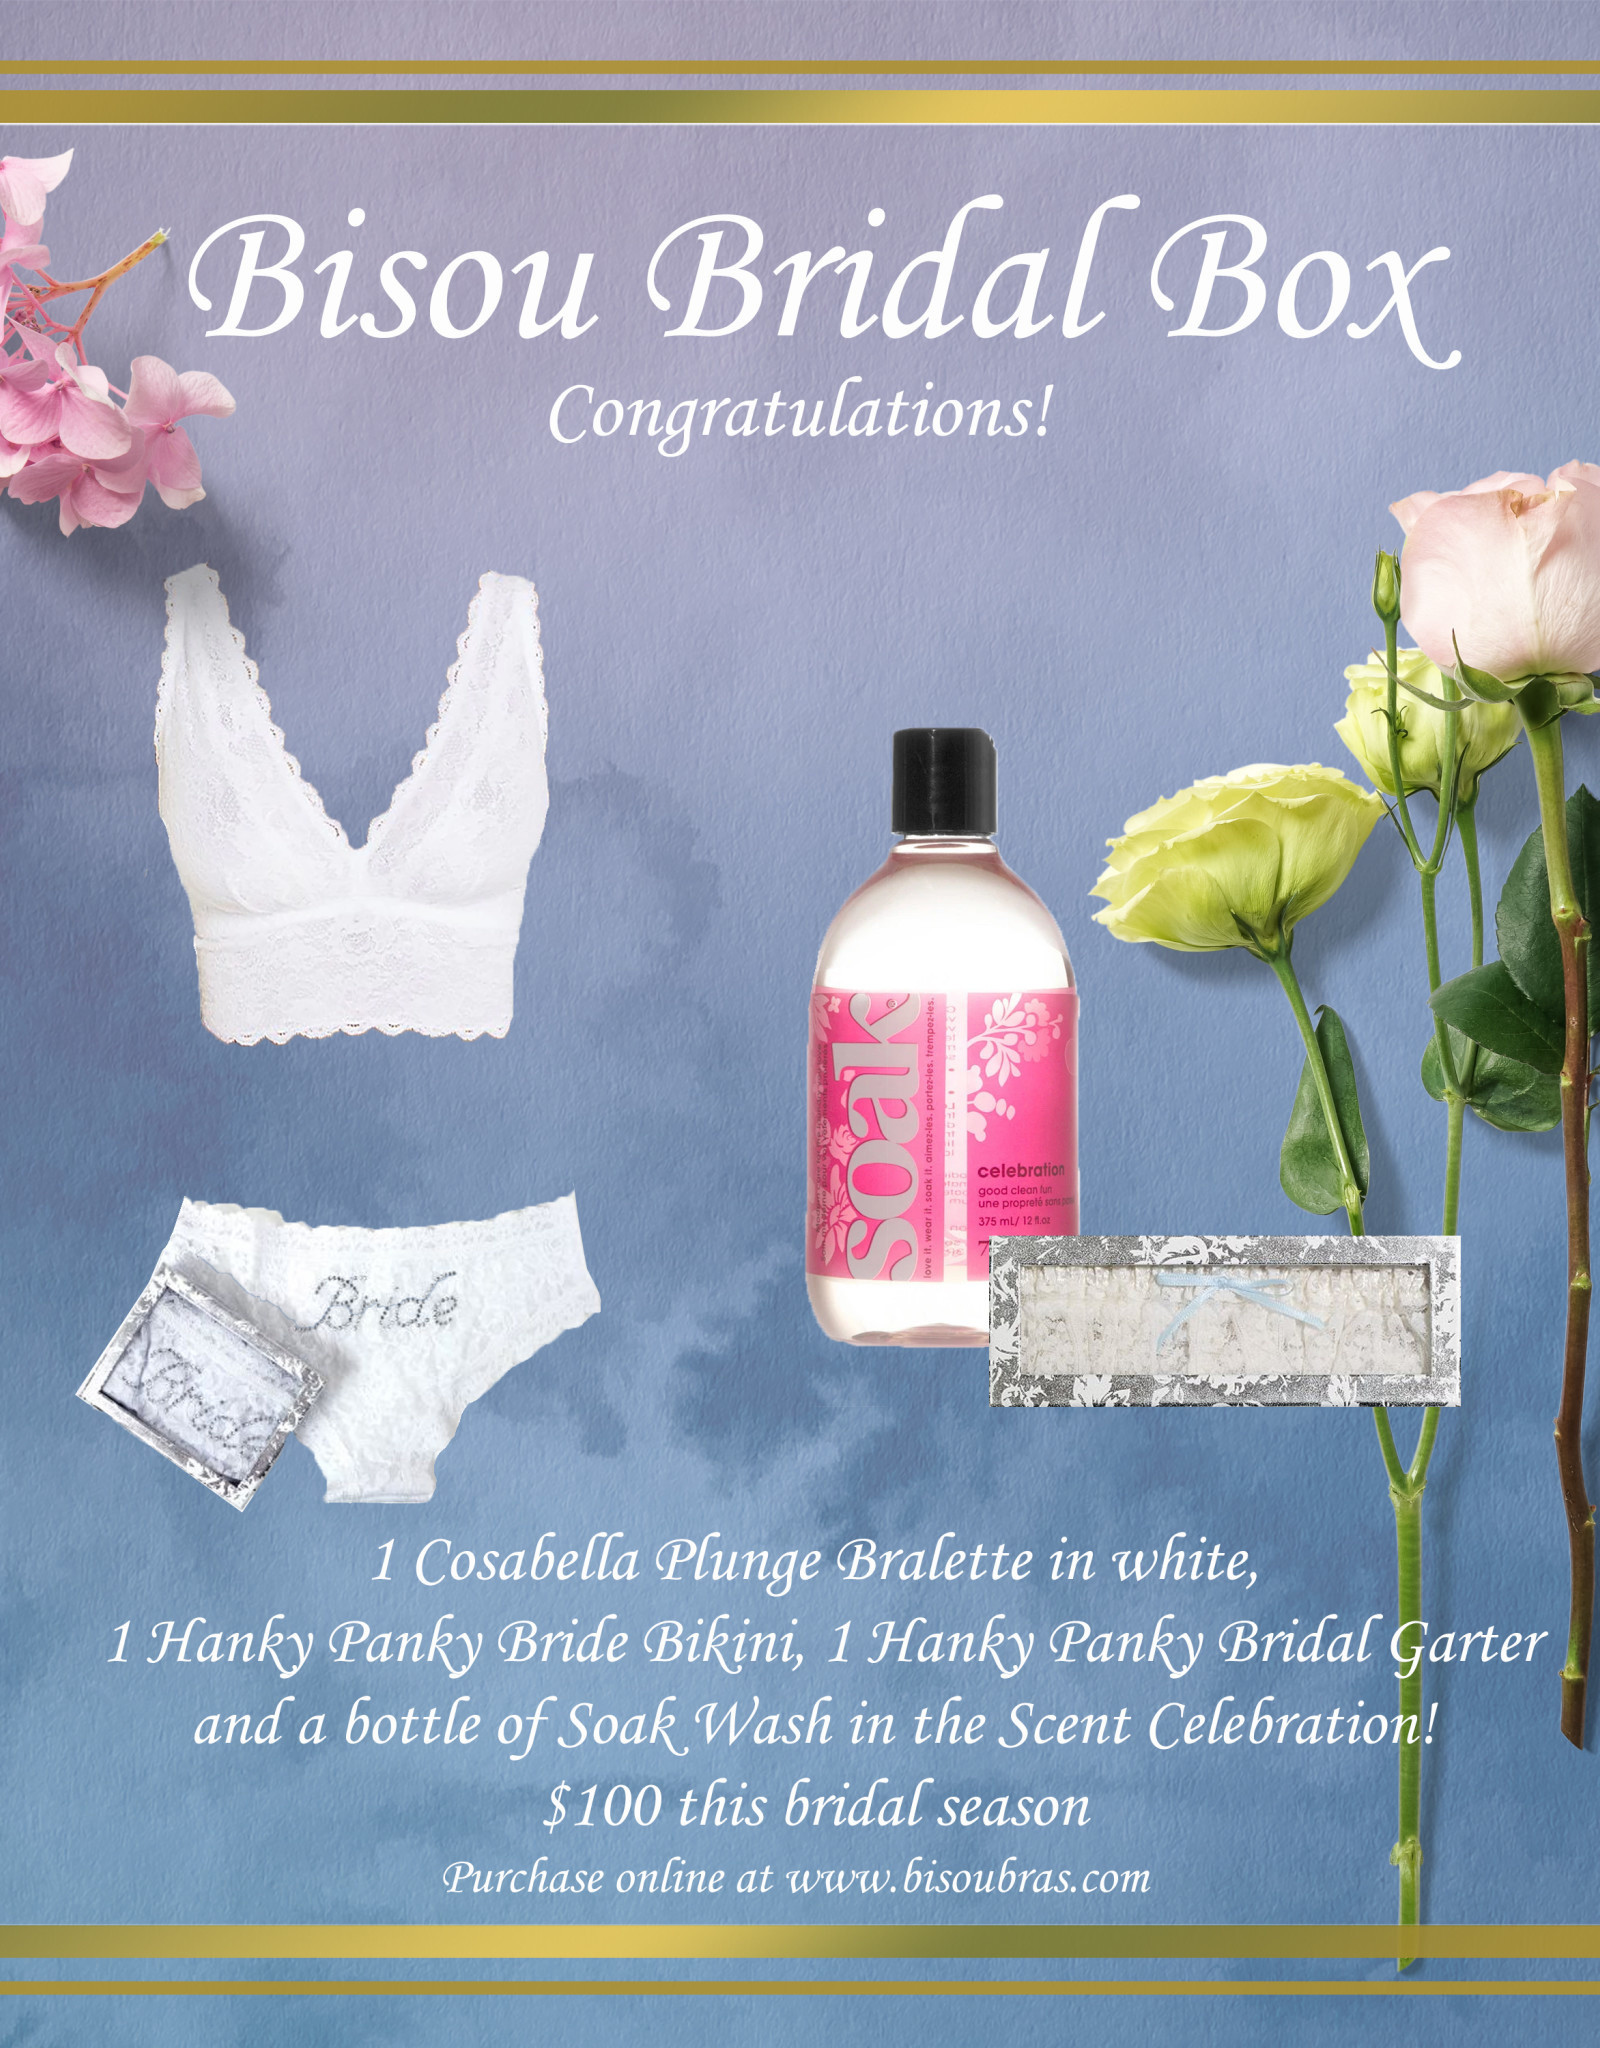 Bisou Bridal Box